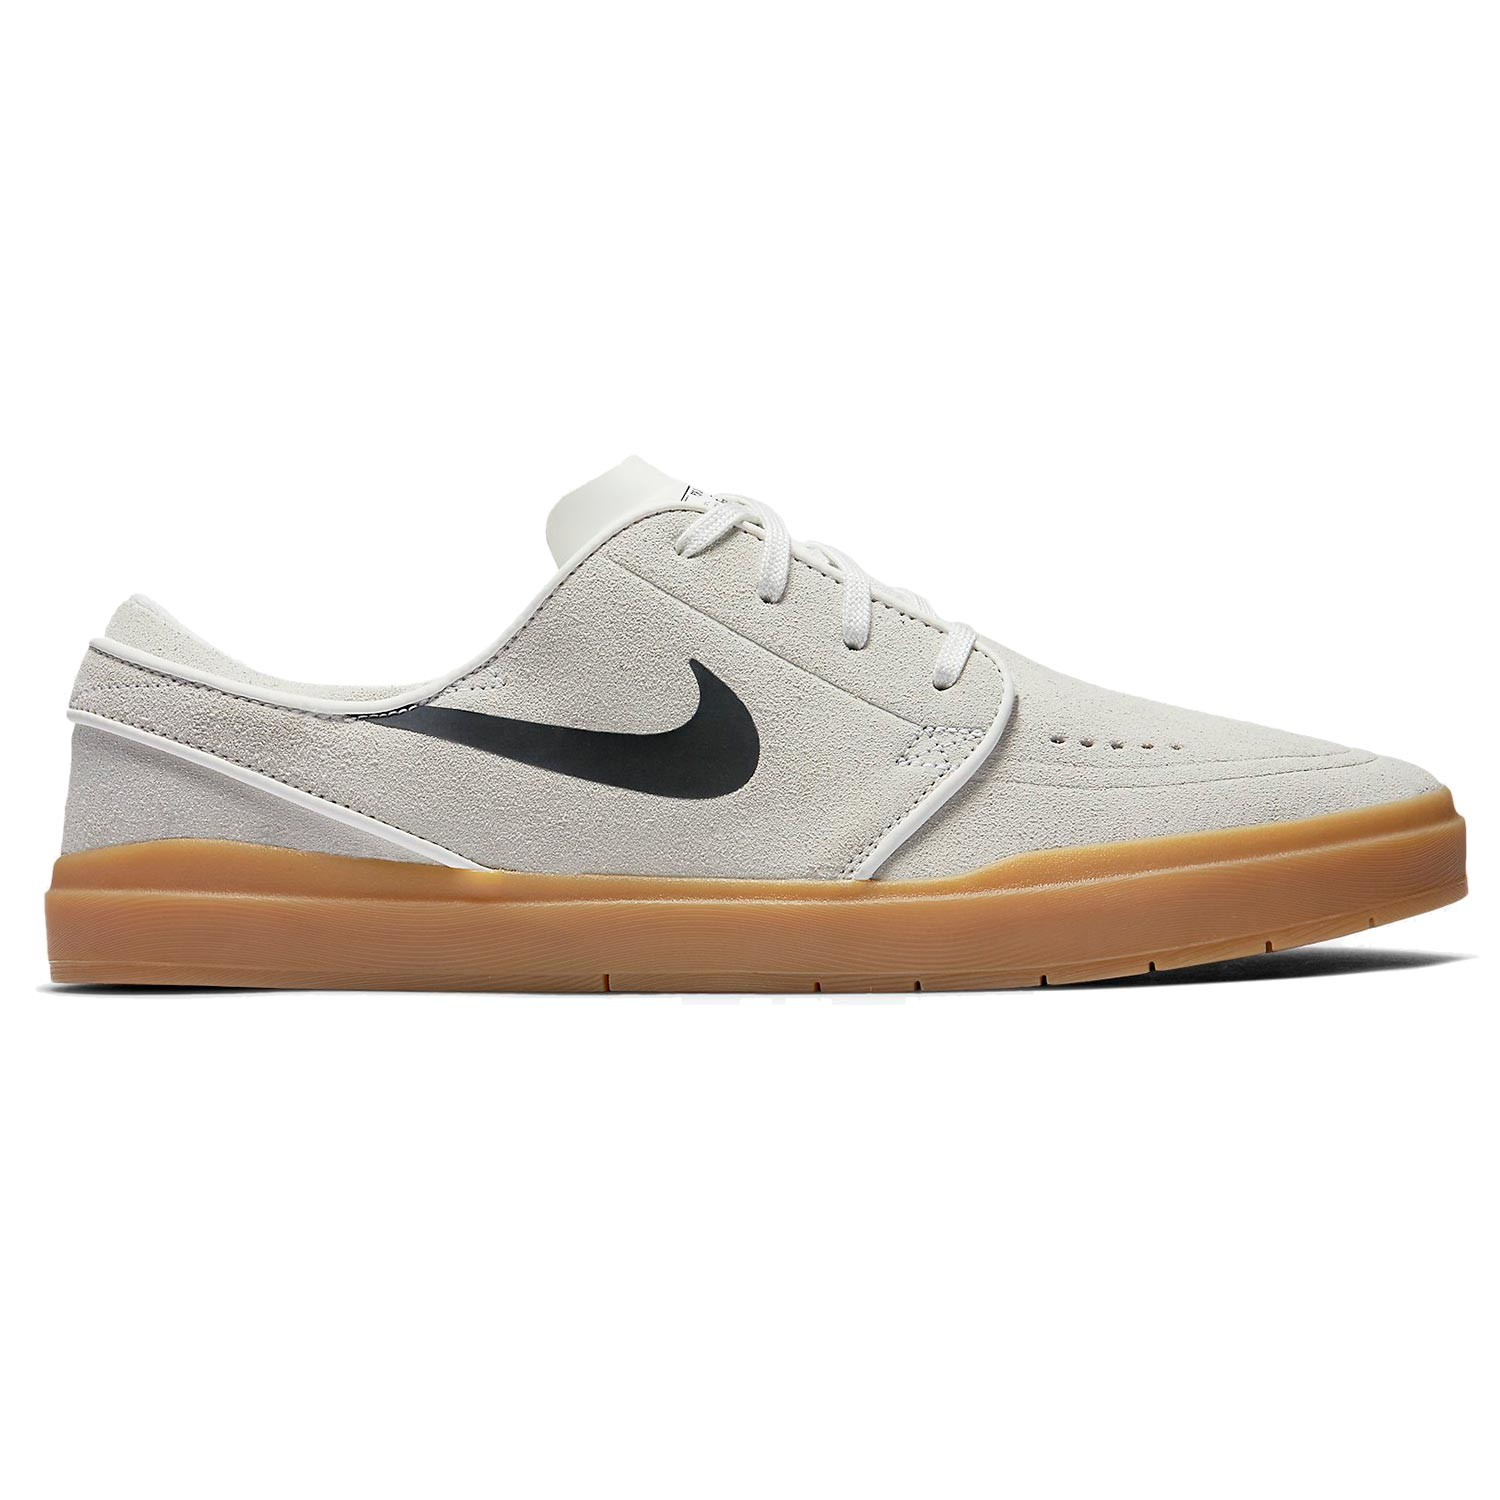 Tenisky Nike SB Stefan Janoski Hyperfeel summit white/black-gum brown